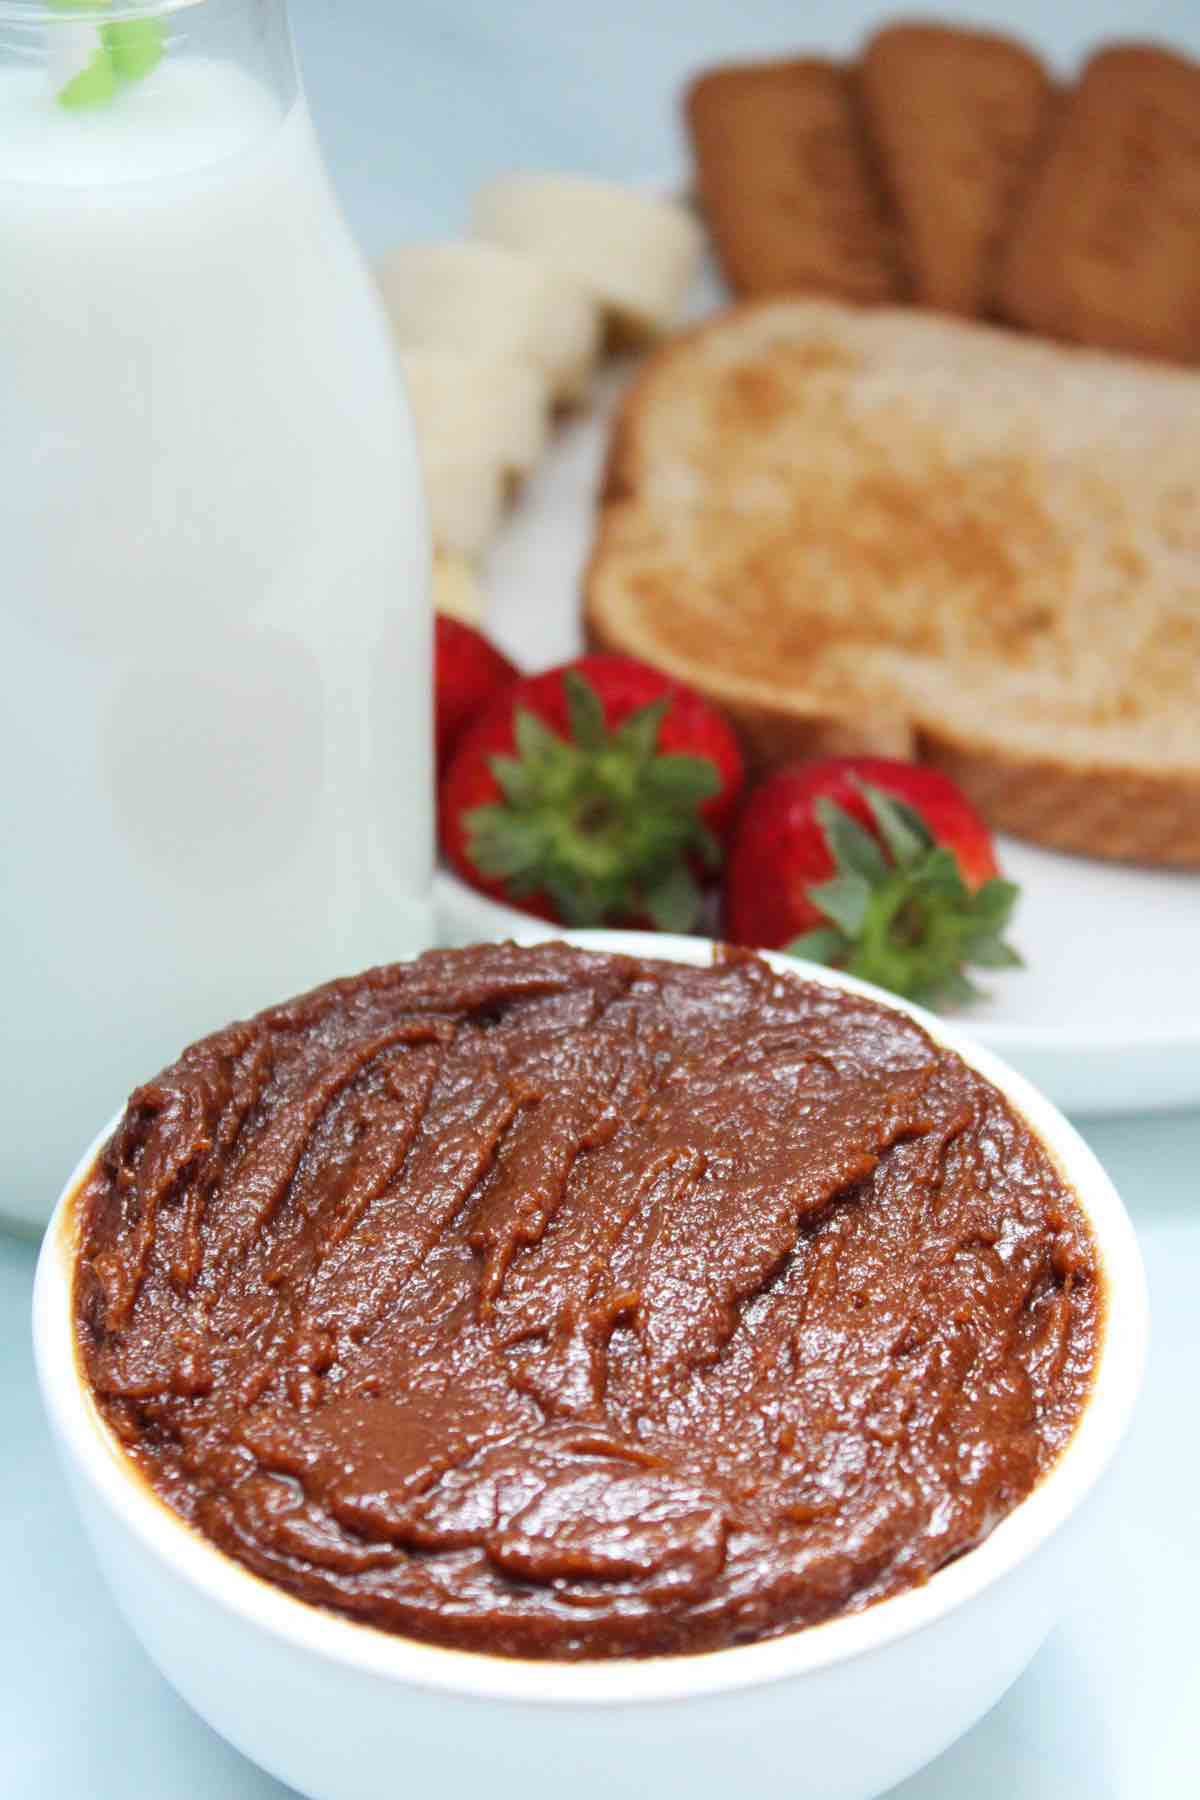 Homemade biscoff cookie spread